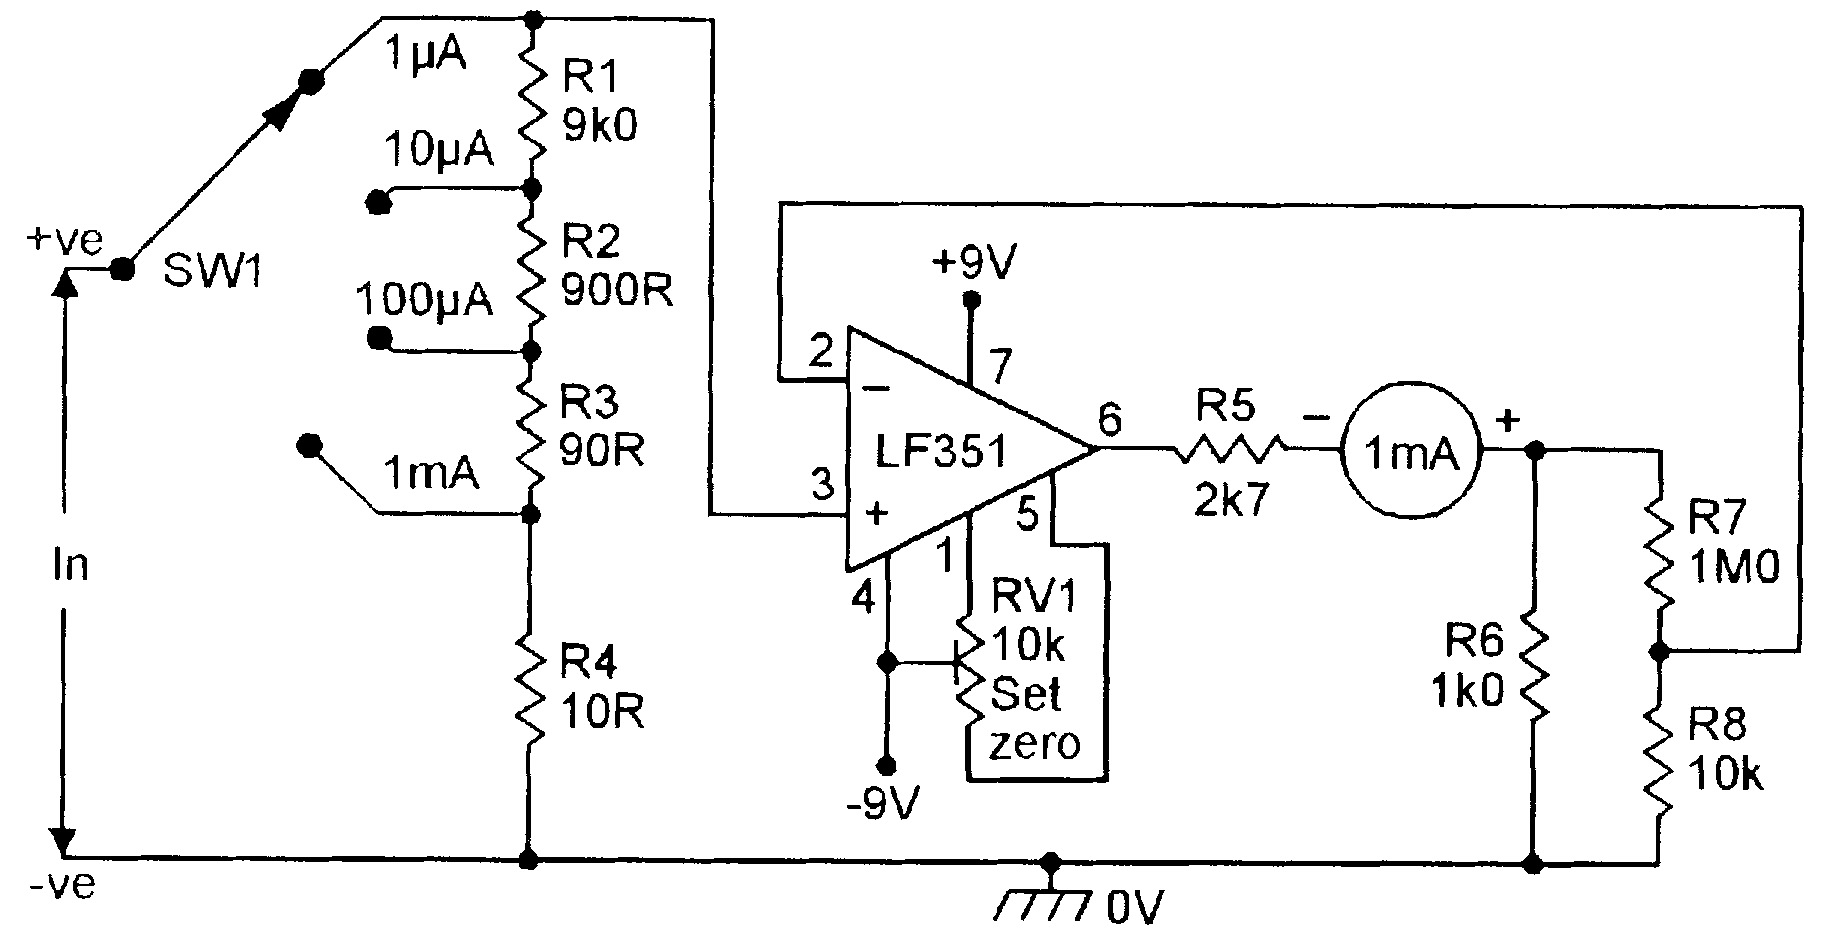 Op Amp Cookbook Part 4 Nuts Volts Magazine Figure Block Diagram Of Detector And Rf Amplifier 14 Four Range Dc Microammeter